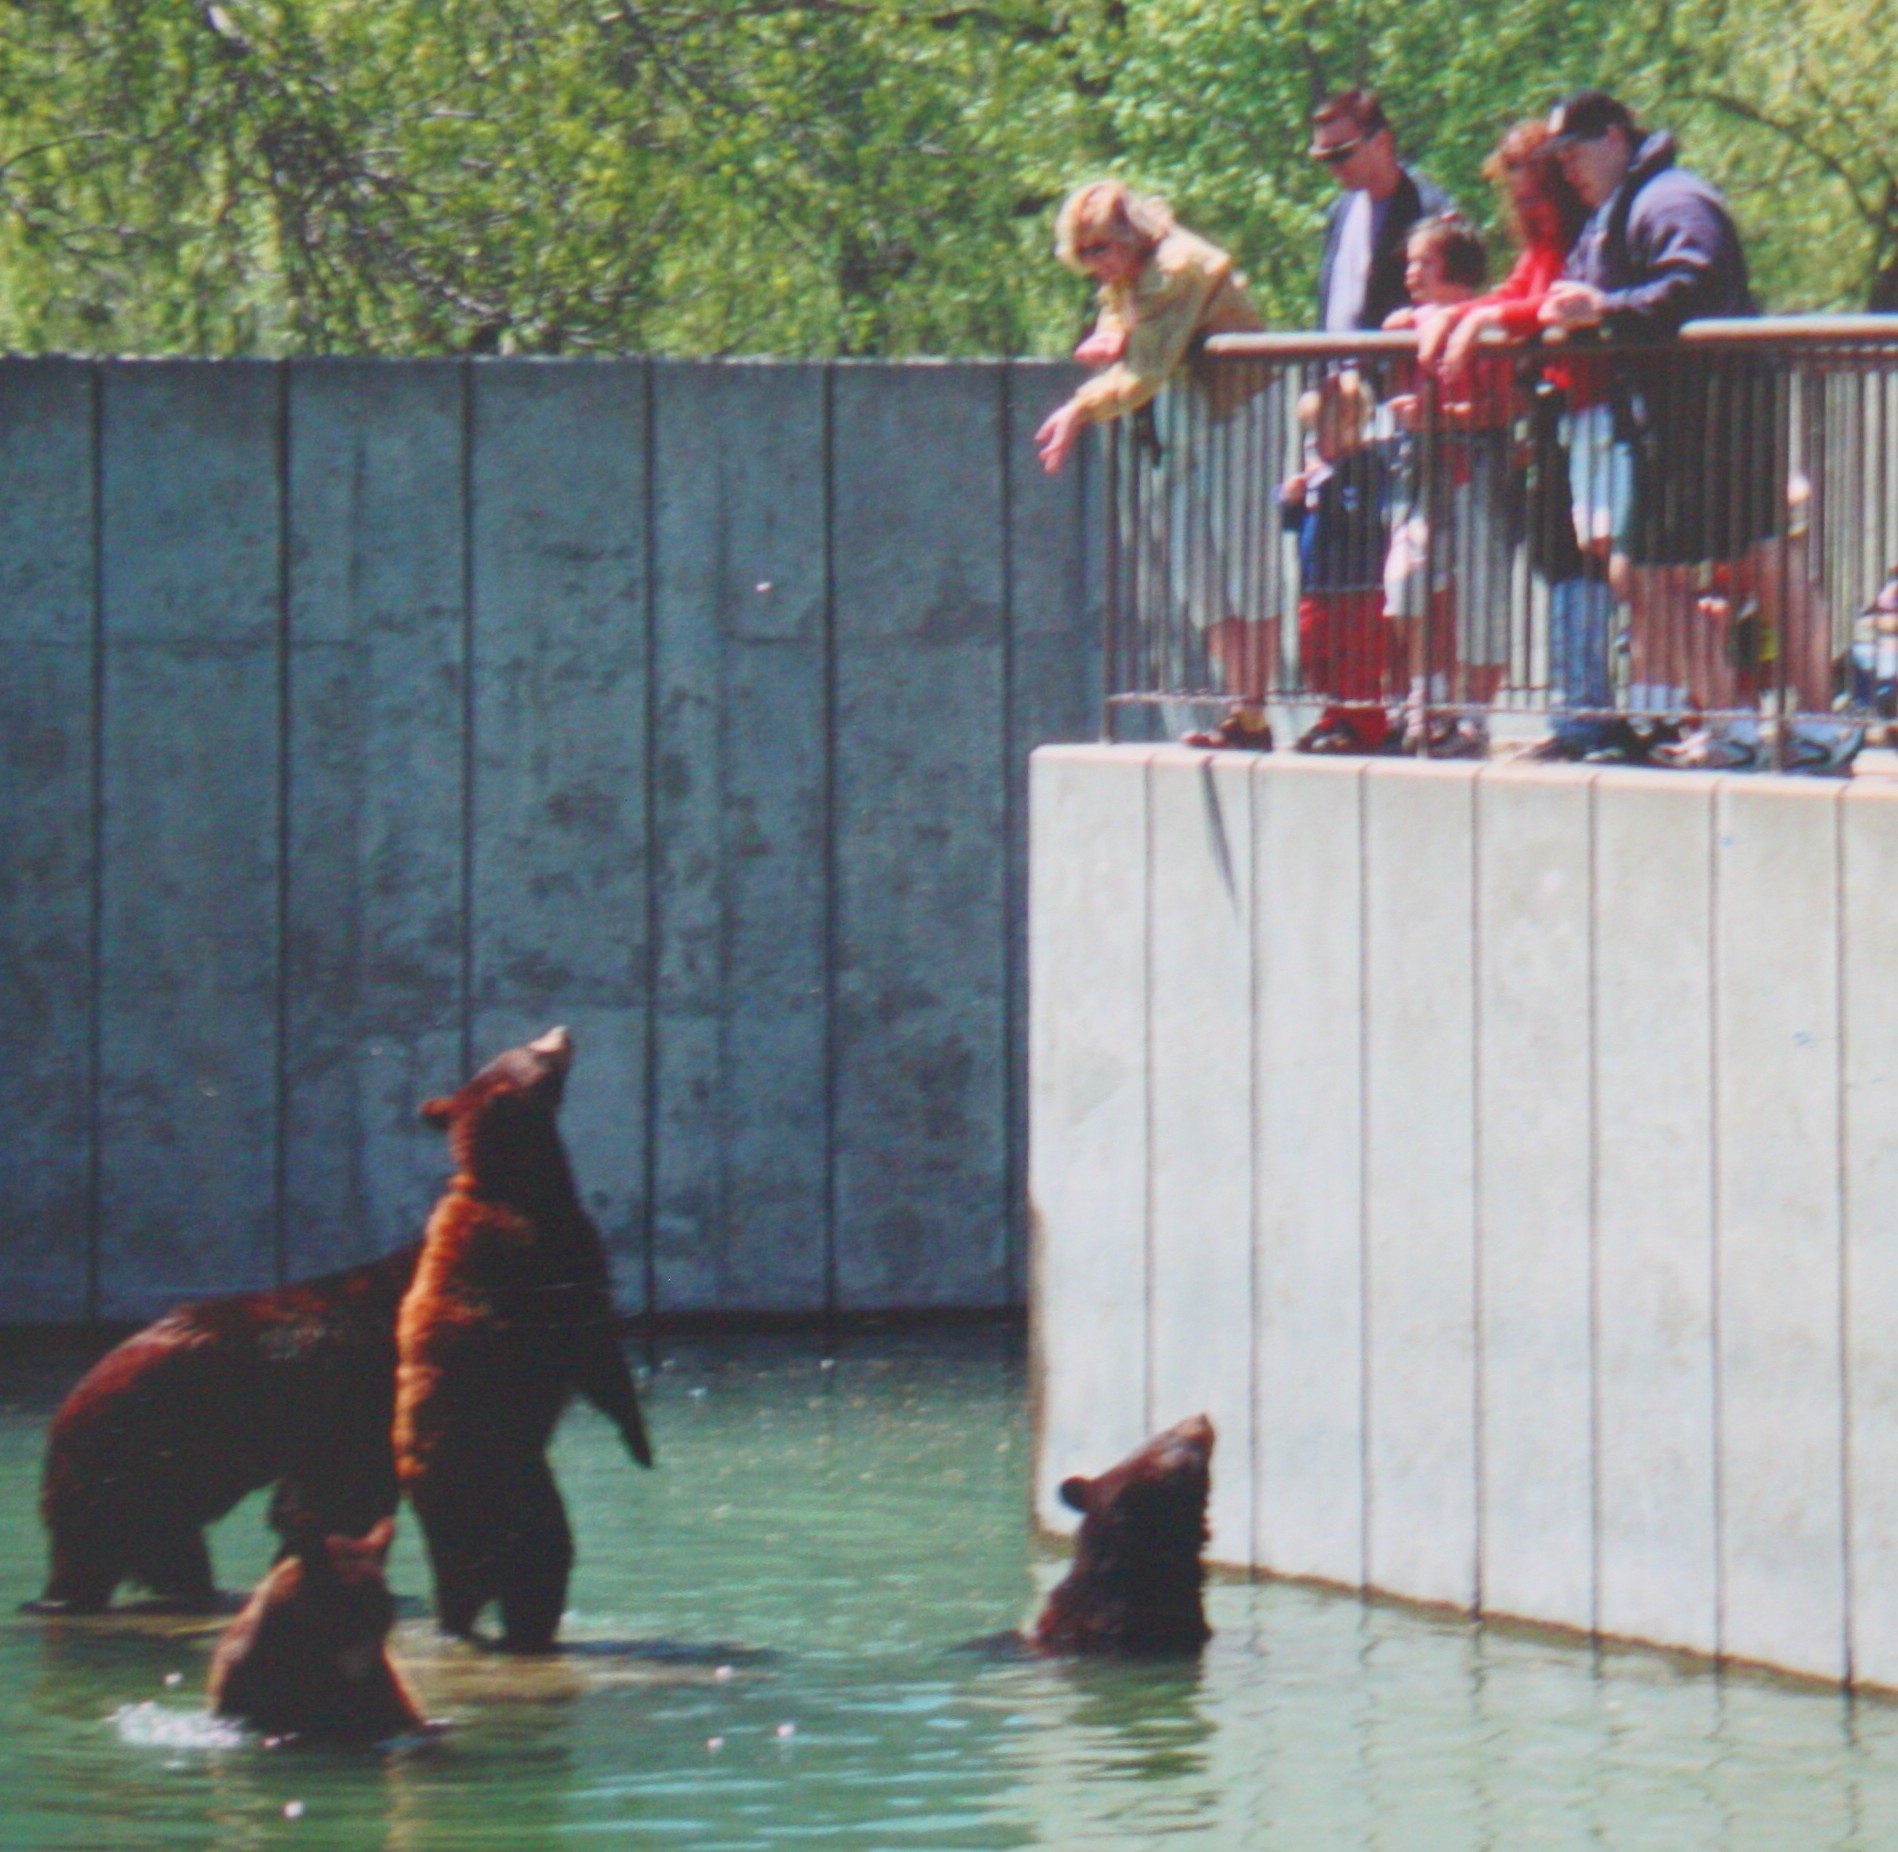 The Blame For Marineland Rests With A Public That Flocks ...